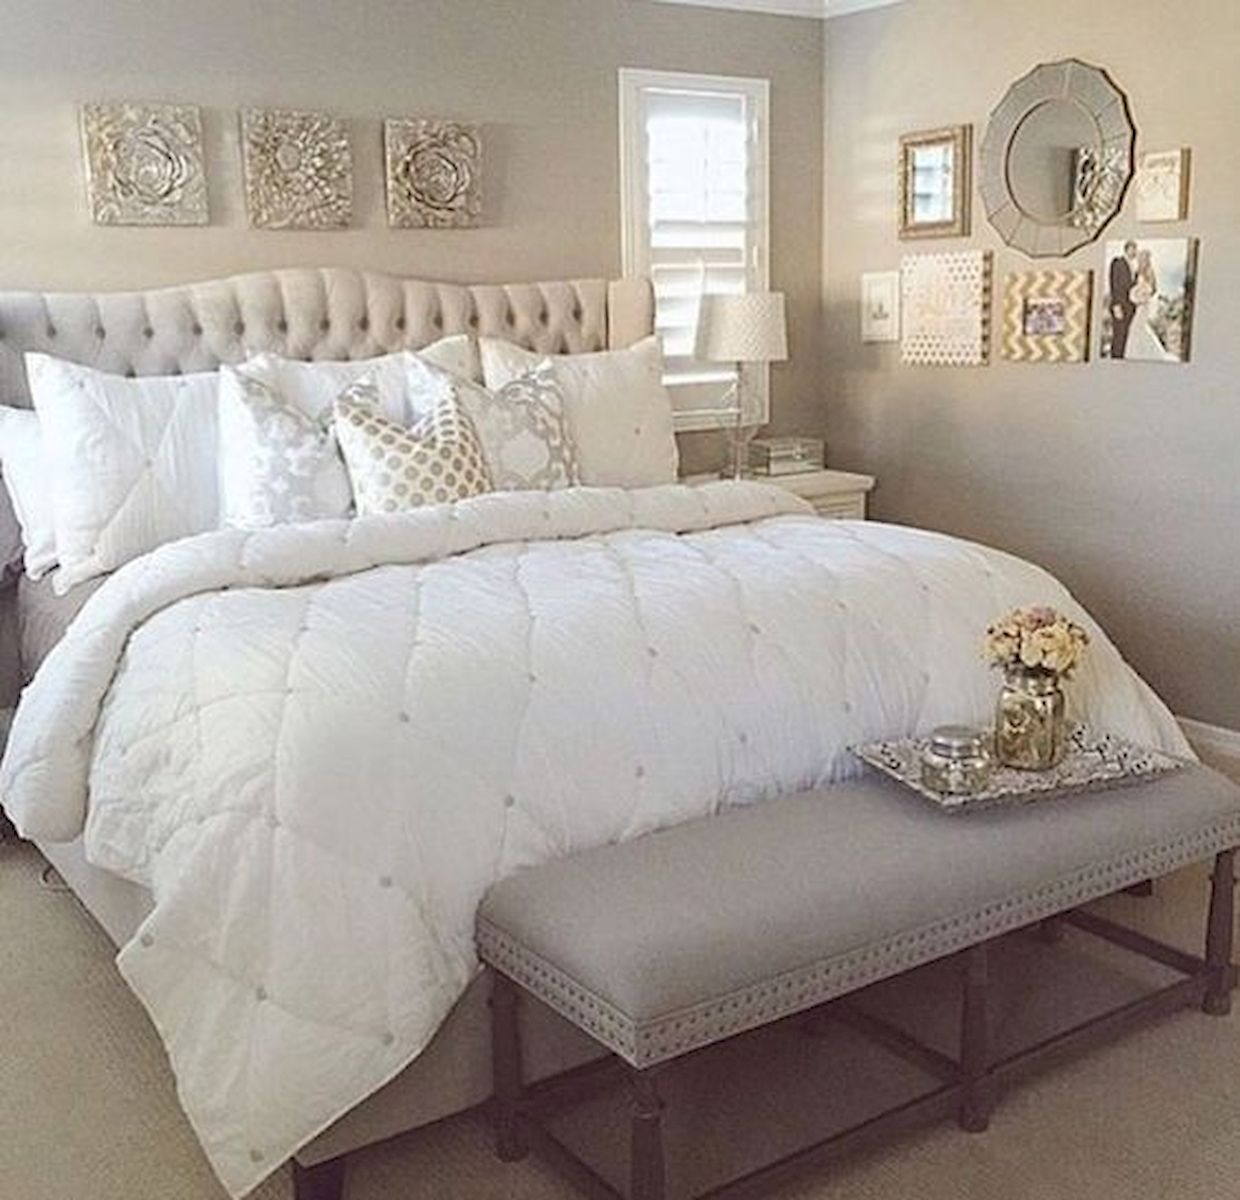 60 Beautiful Bedroom Decor and Design Ideas (42)